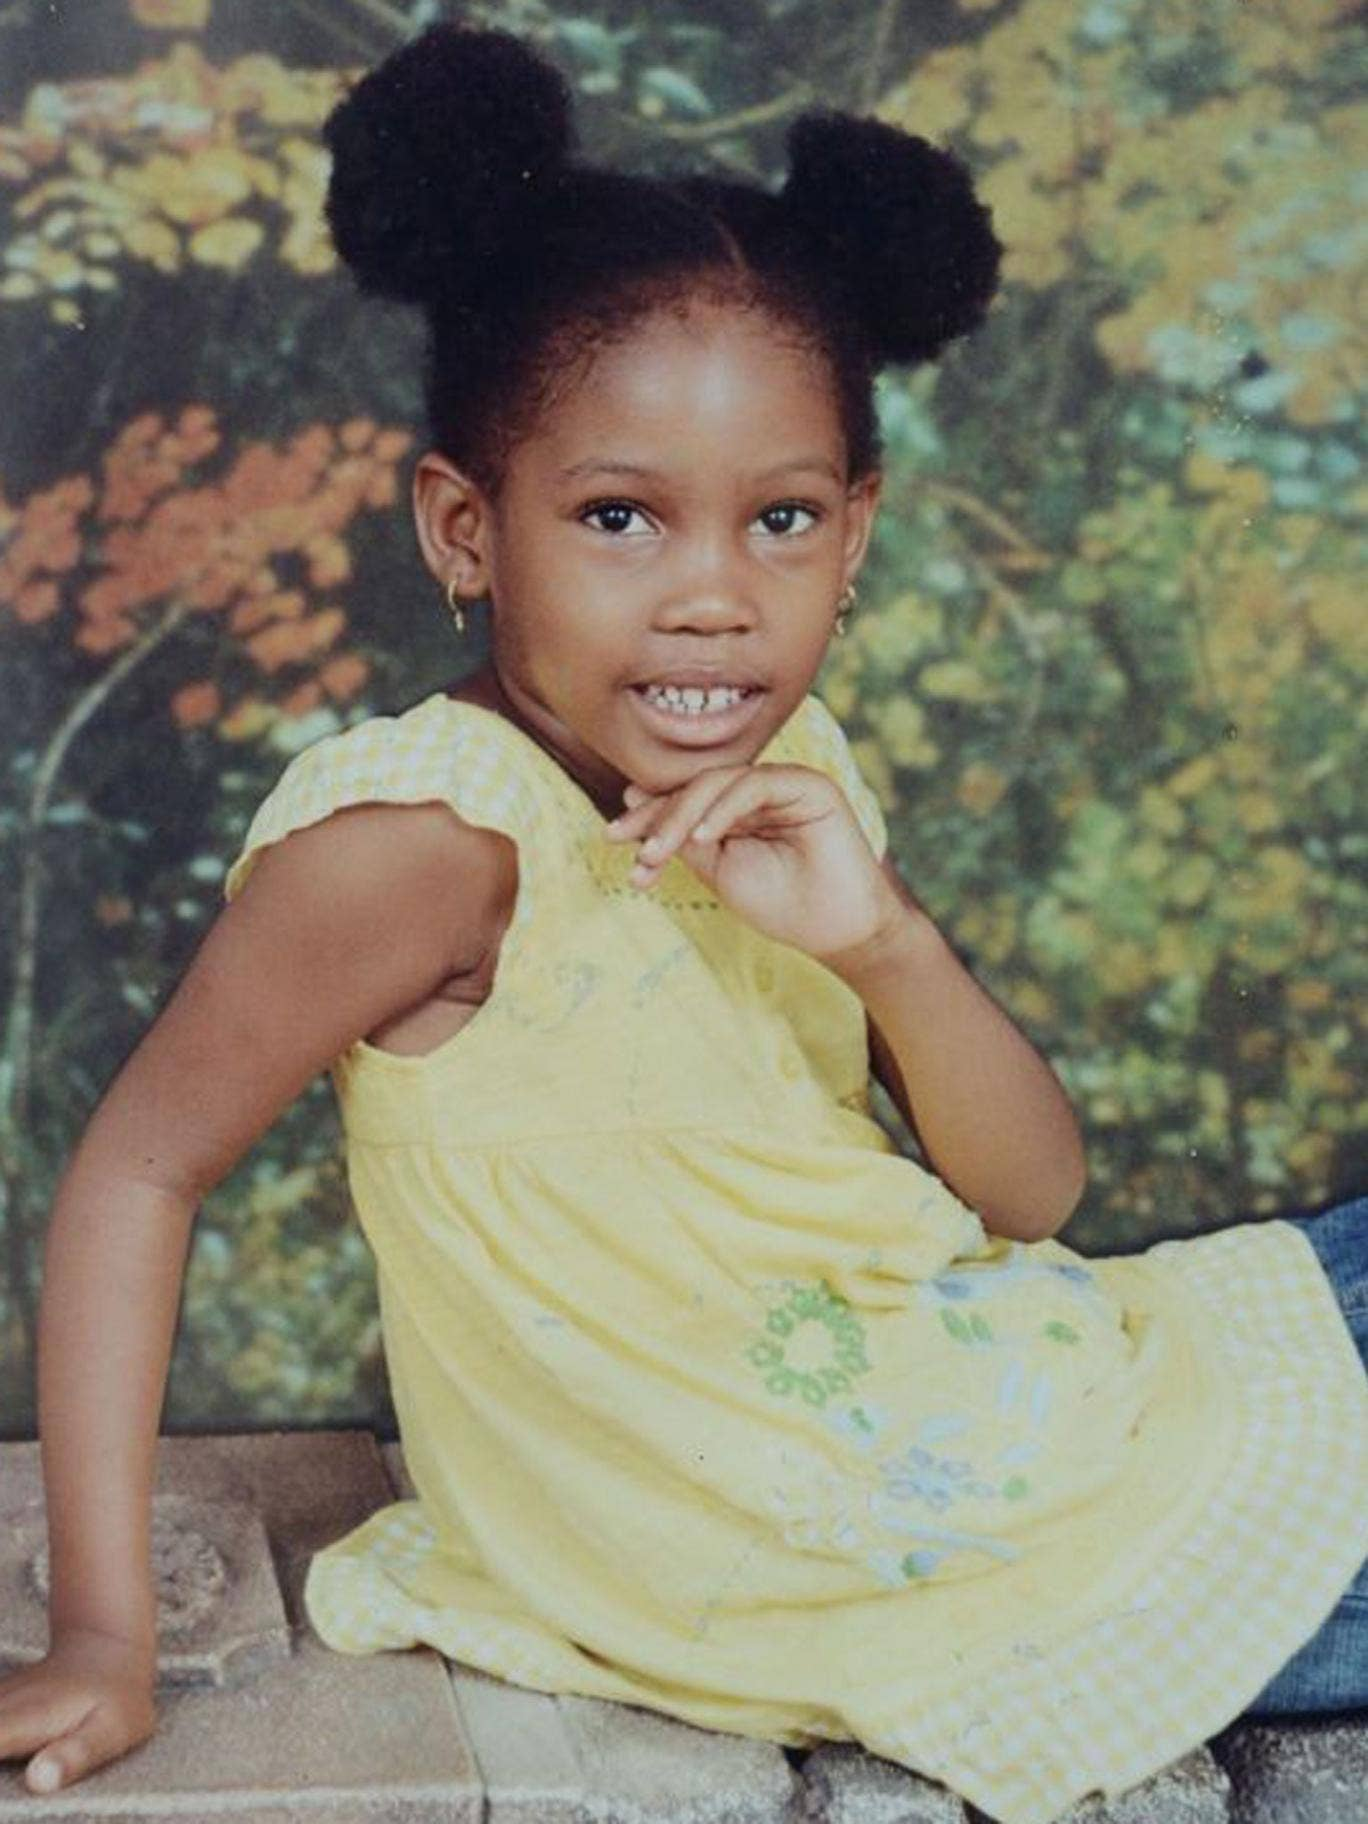 Tributes have been paid to a British girl who was shot dead in Jamaica. Imani Green, eight, from south London, who suffered from sickle cell anaemia, was described as a 'happy, playful' child